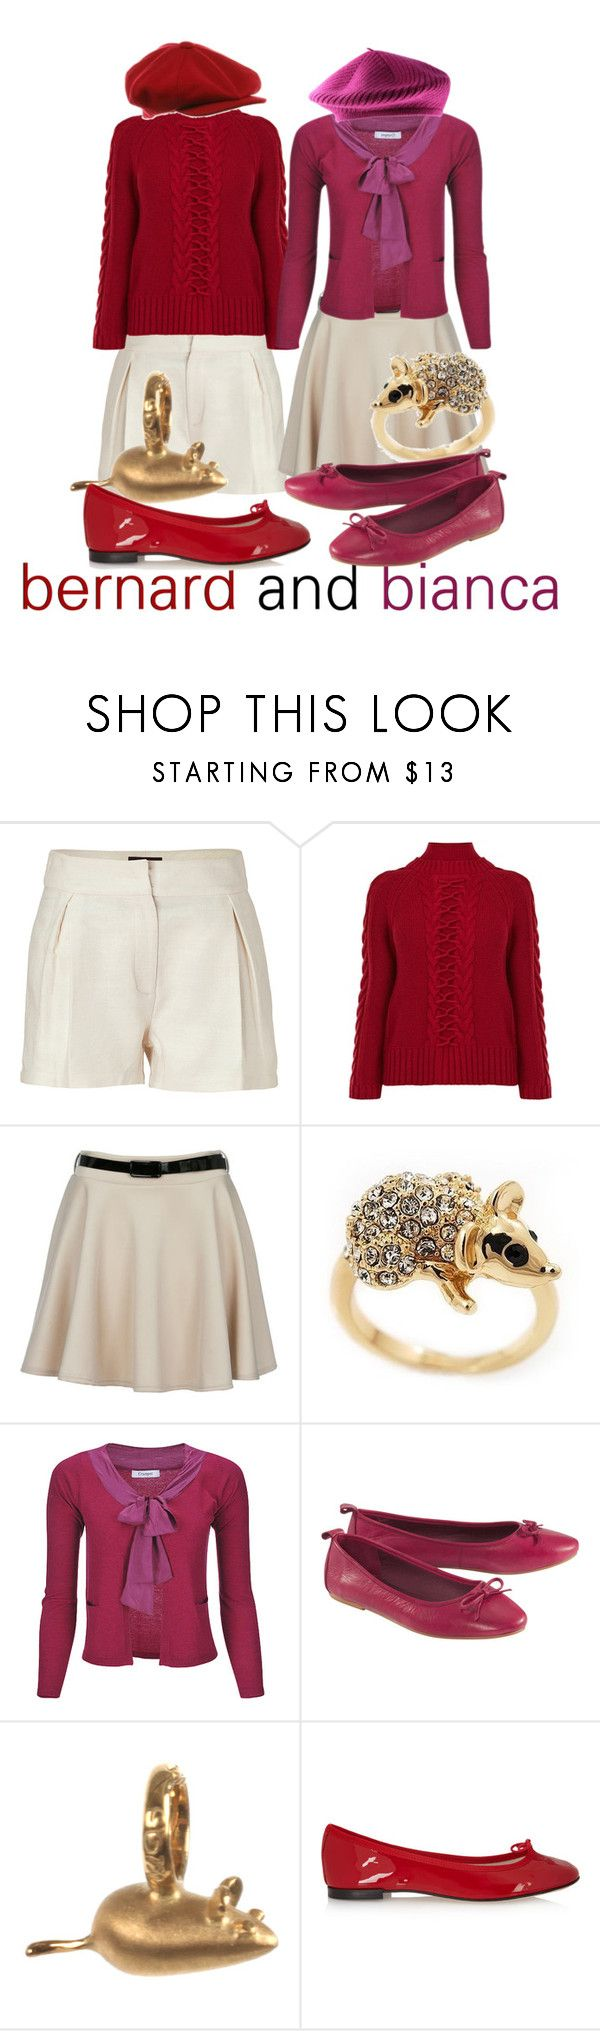 """""""Bernard and Bianca"""" by princesschandler ❤ liked on Polyvore featuring Saloni, Karen Millen, Avalaya, Crumpet, Inuovo, Antonio Bernardo, Repetto and the rescuers"""